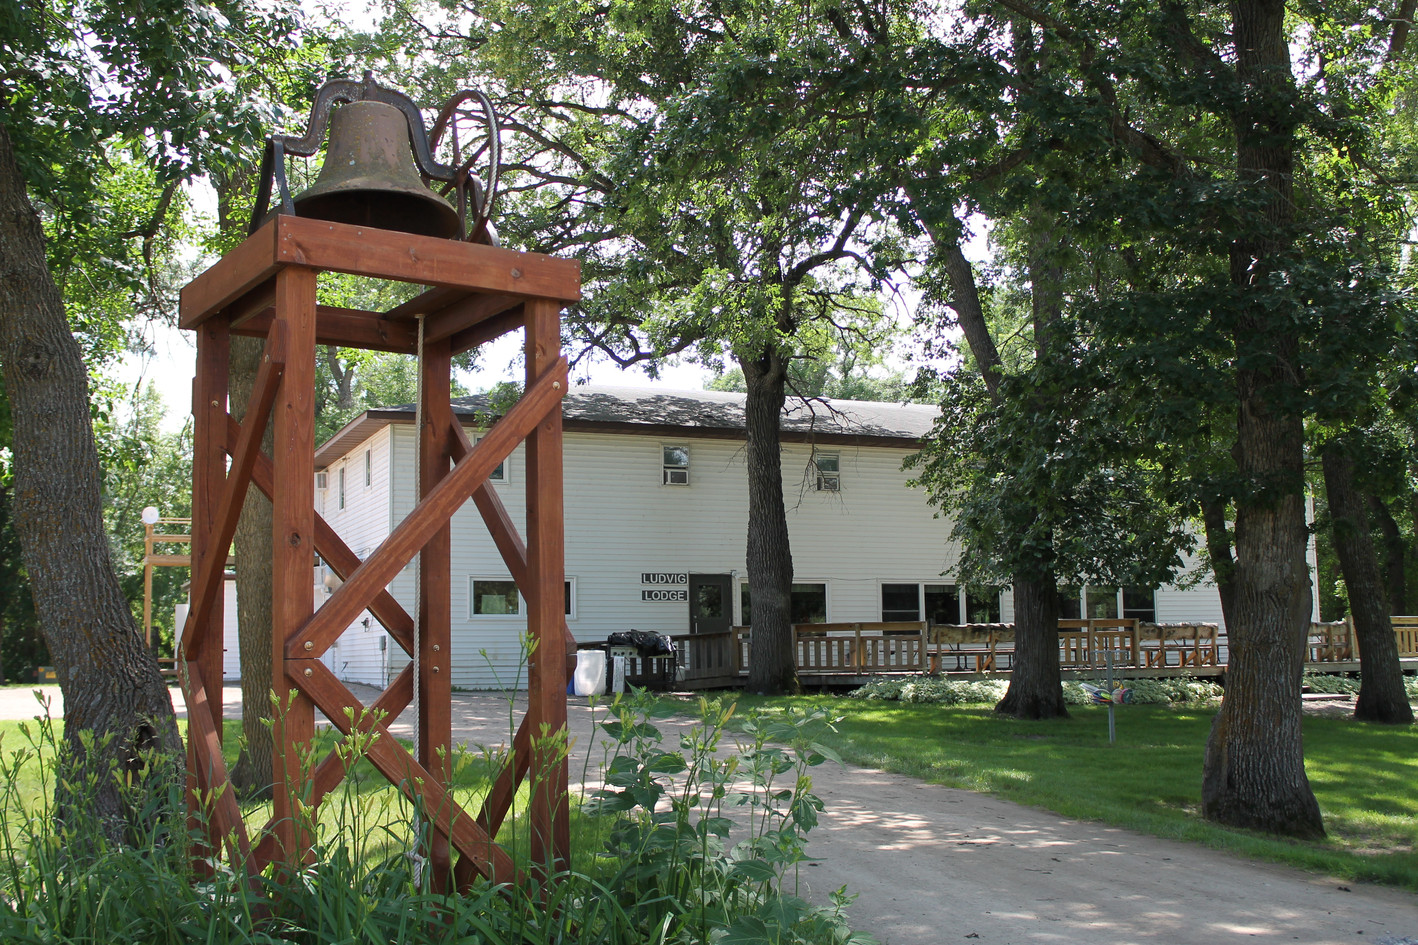 The Lodge and Dinner Bell